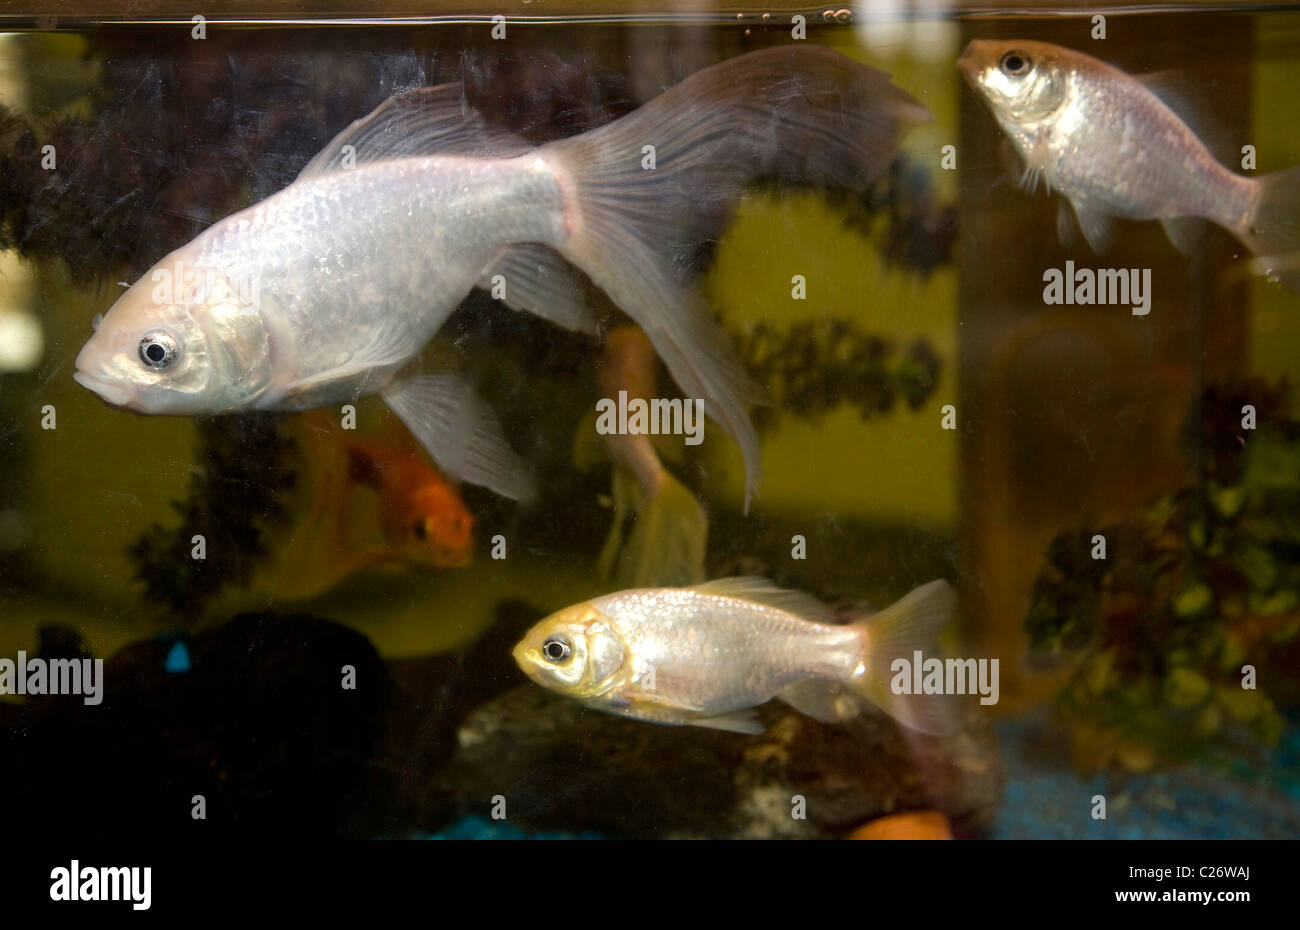 Tropical fish in a fish tank - Stock Image